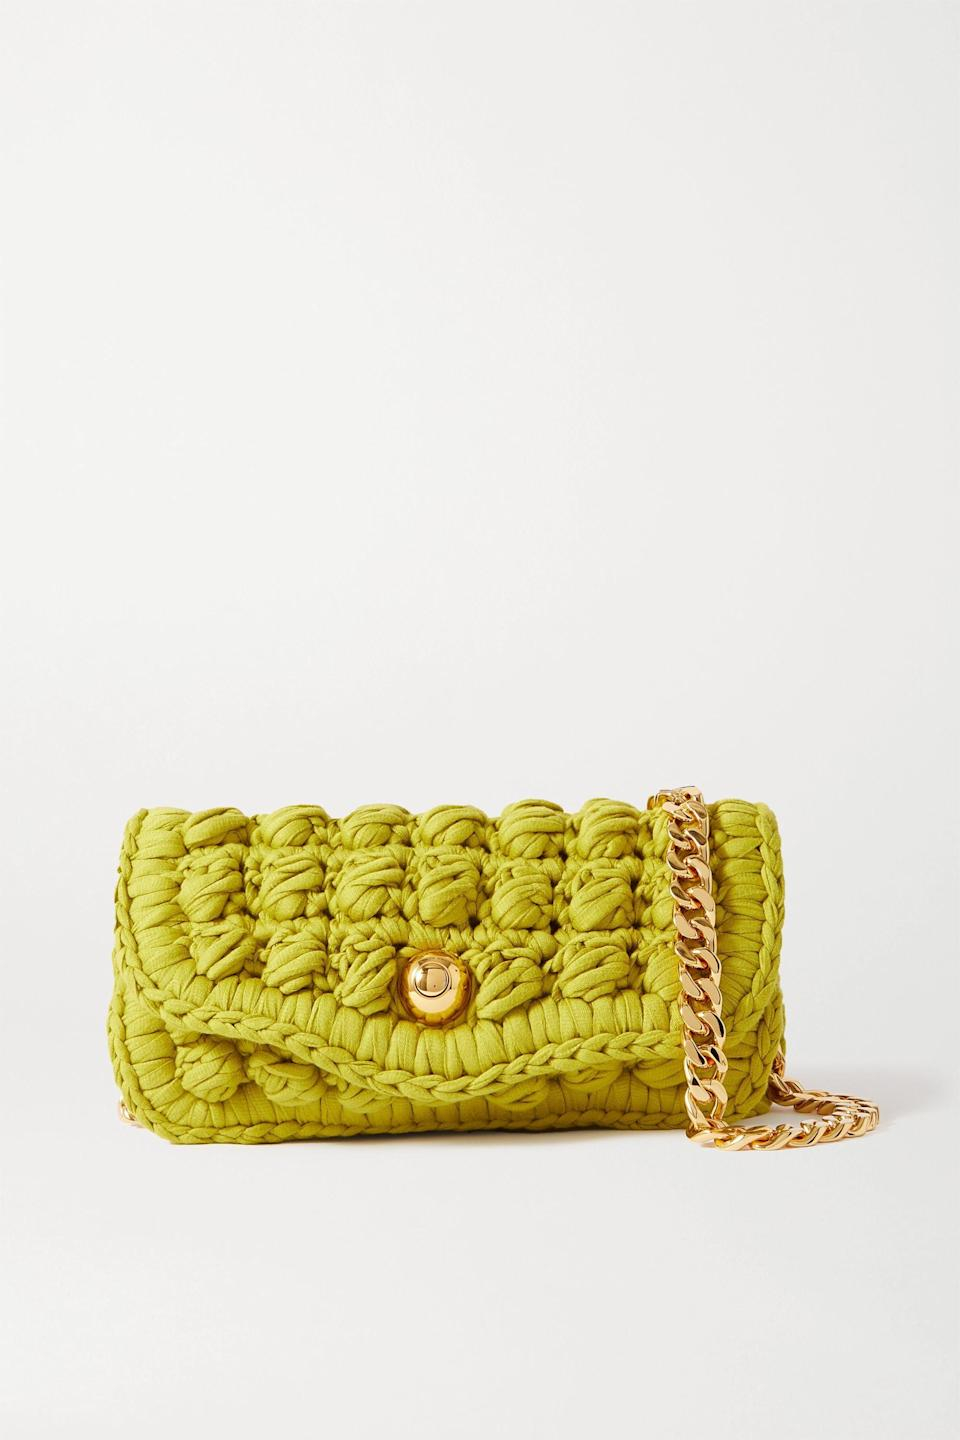 """<p><strong>Bottega Veneta</strong></p><p>net-a-porter.com</p><p><strong>$4500.00</strong></p><p><a href=""""https://click.linksynergy.com/deeplink?id=6Km1lFswsiY&mid=24449&murl=https%3A%2F%2Fwww.net-a-porter.com%2Fen-us%2Fshop%2Fproduct%2Fbottega-veneta%2Fcrocheted-cotton-blend-shoulder-bag%2F1285973"""" rel=""""nofollow noopener"""" target=""""_blank"""" data-ylk=""""slk:Shop Now"""" class=""""link rapid-noclick-resp"""">Shop Now</a></p><p>Hand-crocheted from chunky cotton-blend yarn, this bag is a true masterpiece. It will surely take you many places in 2021.</p>"""